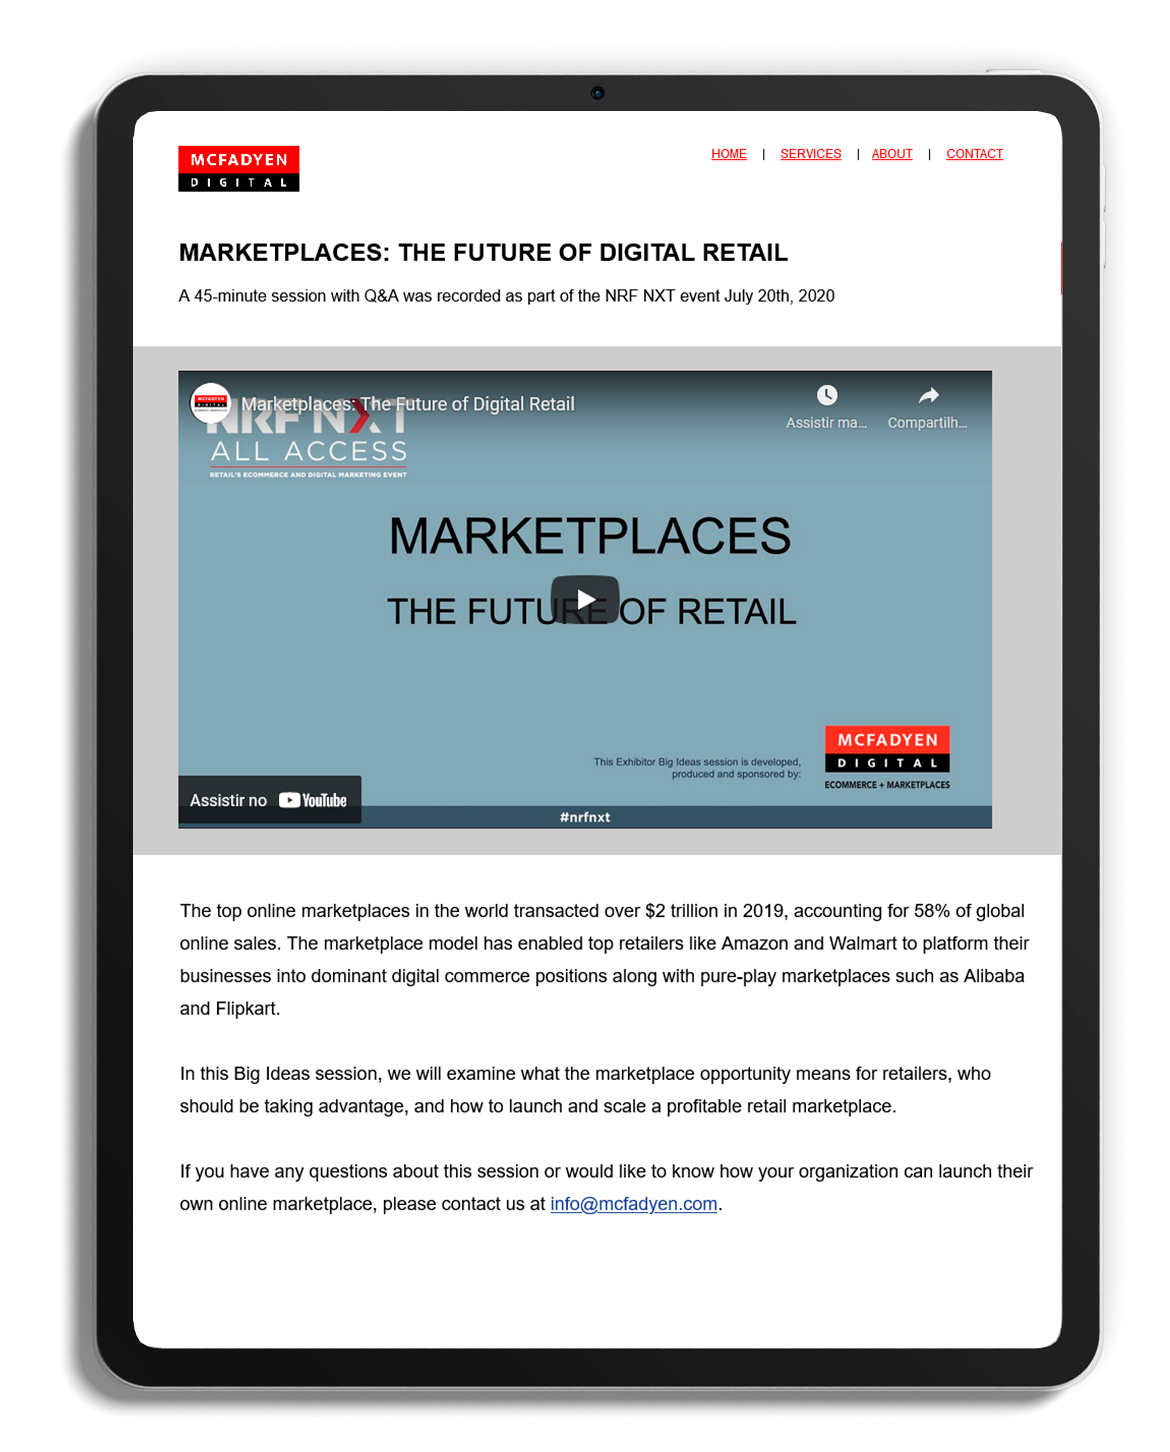 Marketplaces: The Future of Retail